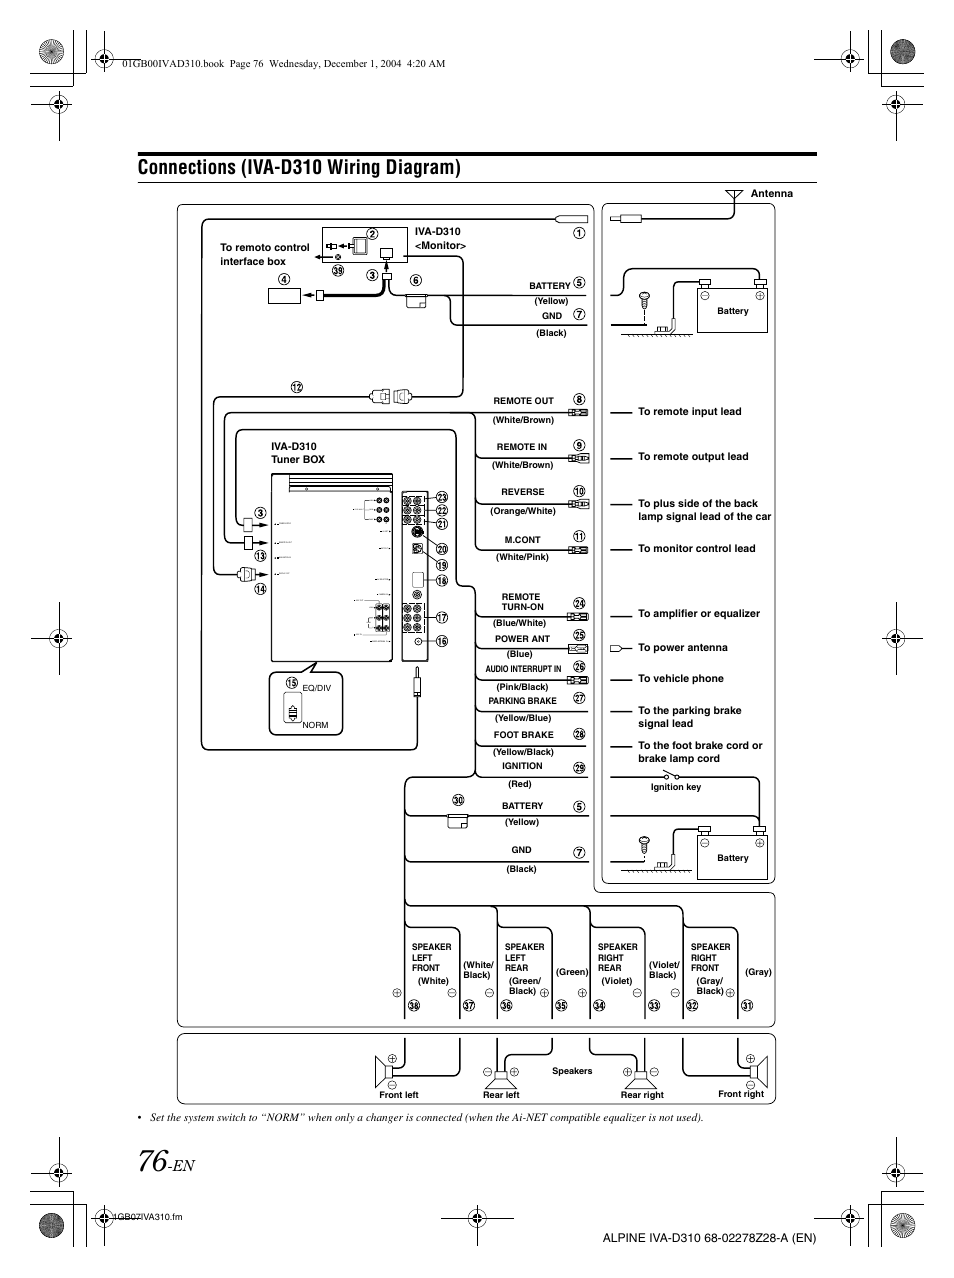 alpine iva d310 page78 alpine iva d310 wiring diagram alpine iva-w205 wiring harness at crackthecode.co